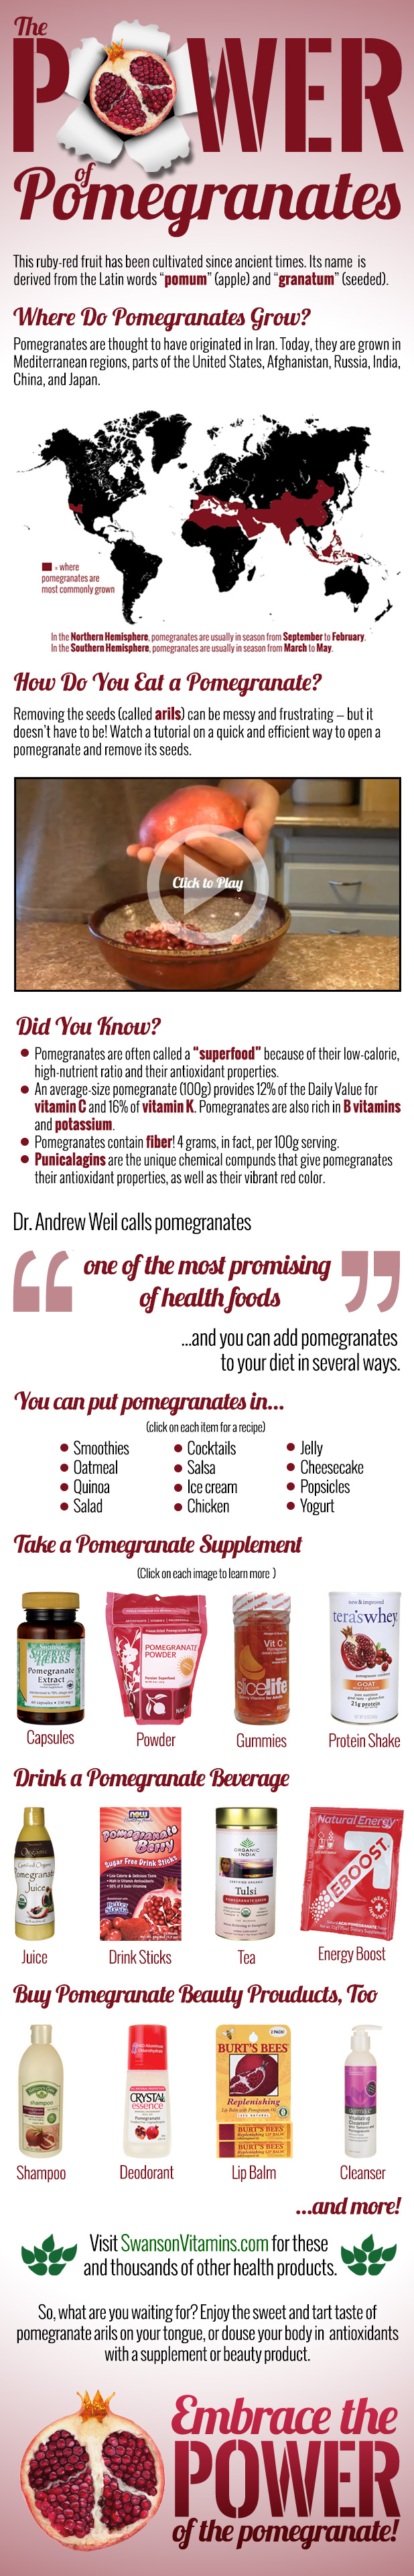 All About Pomegranates